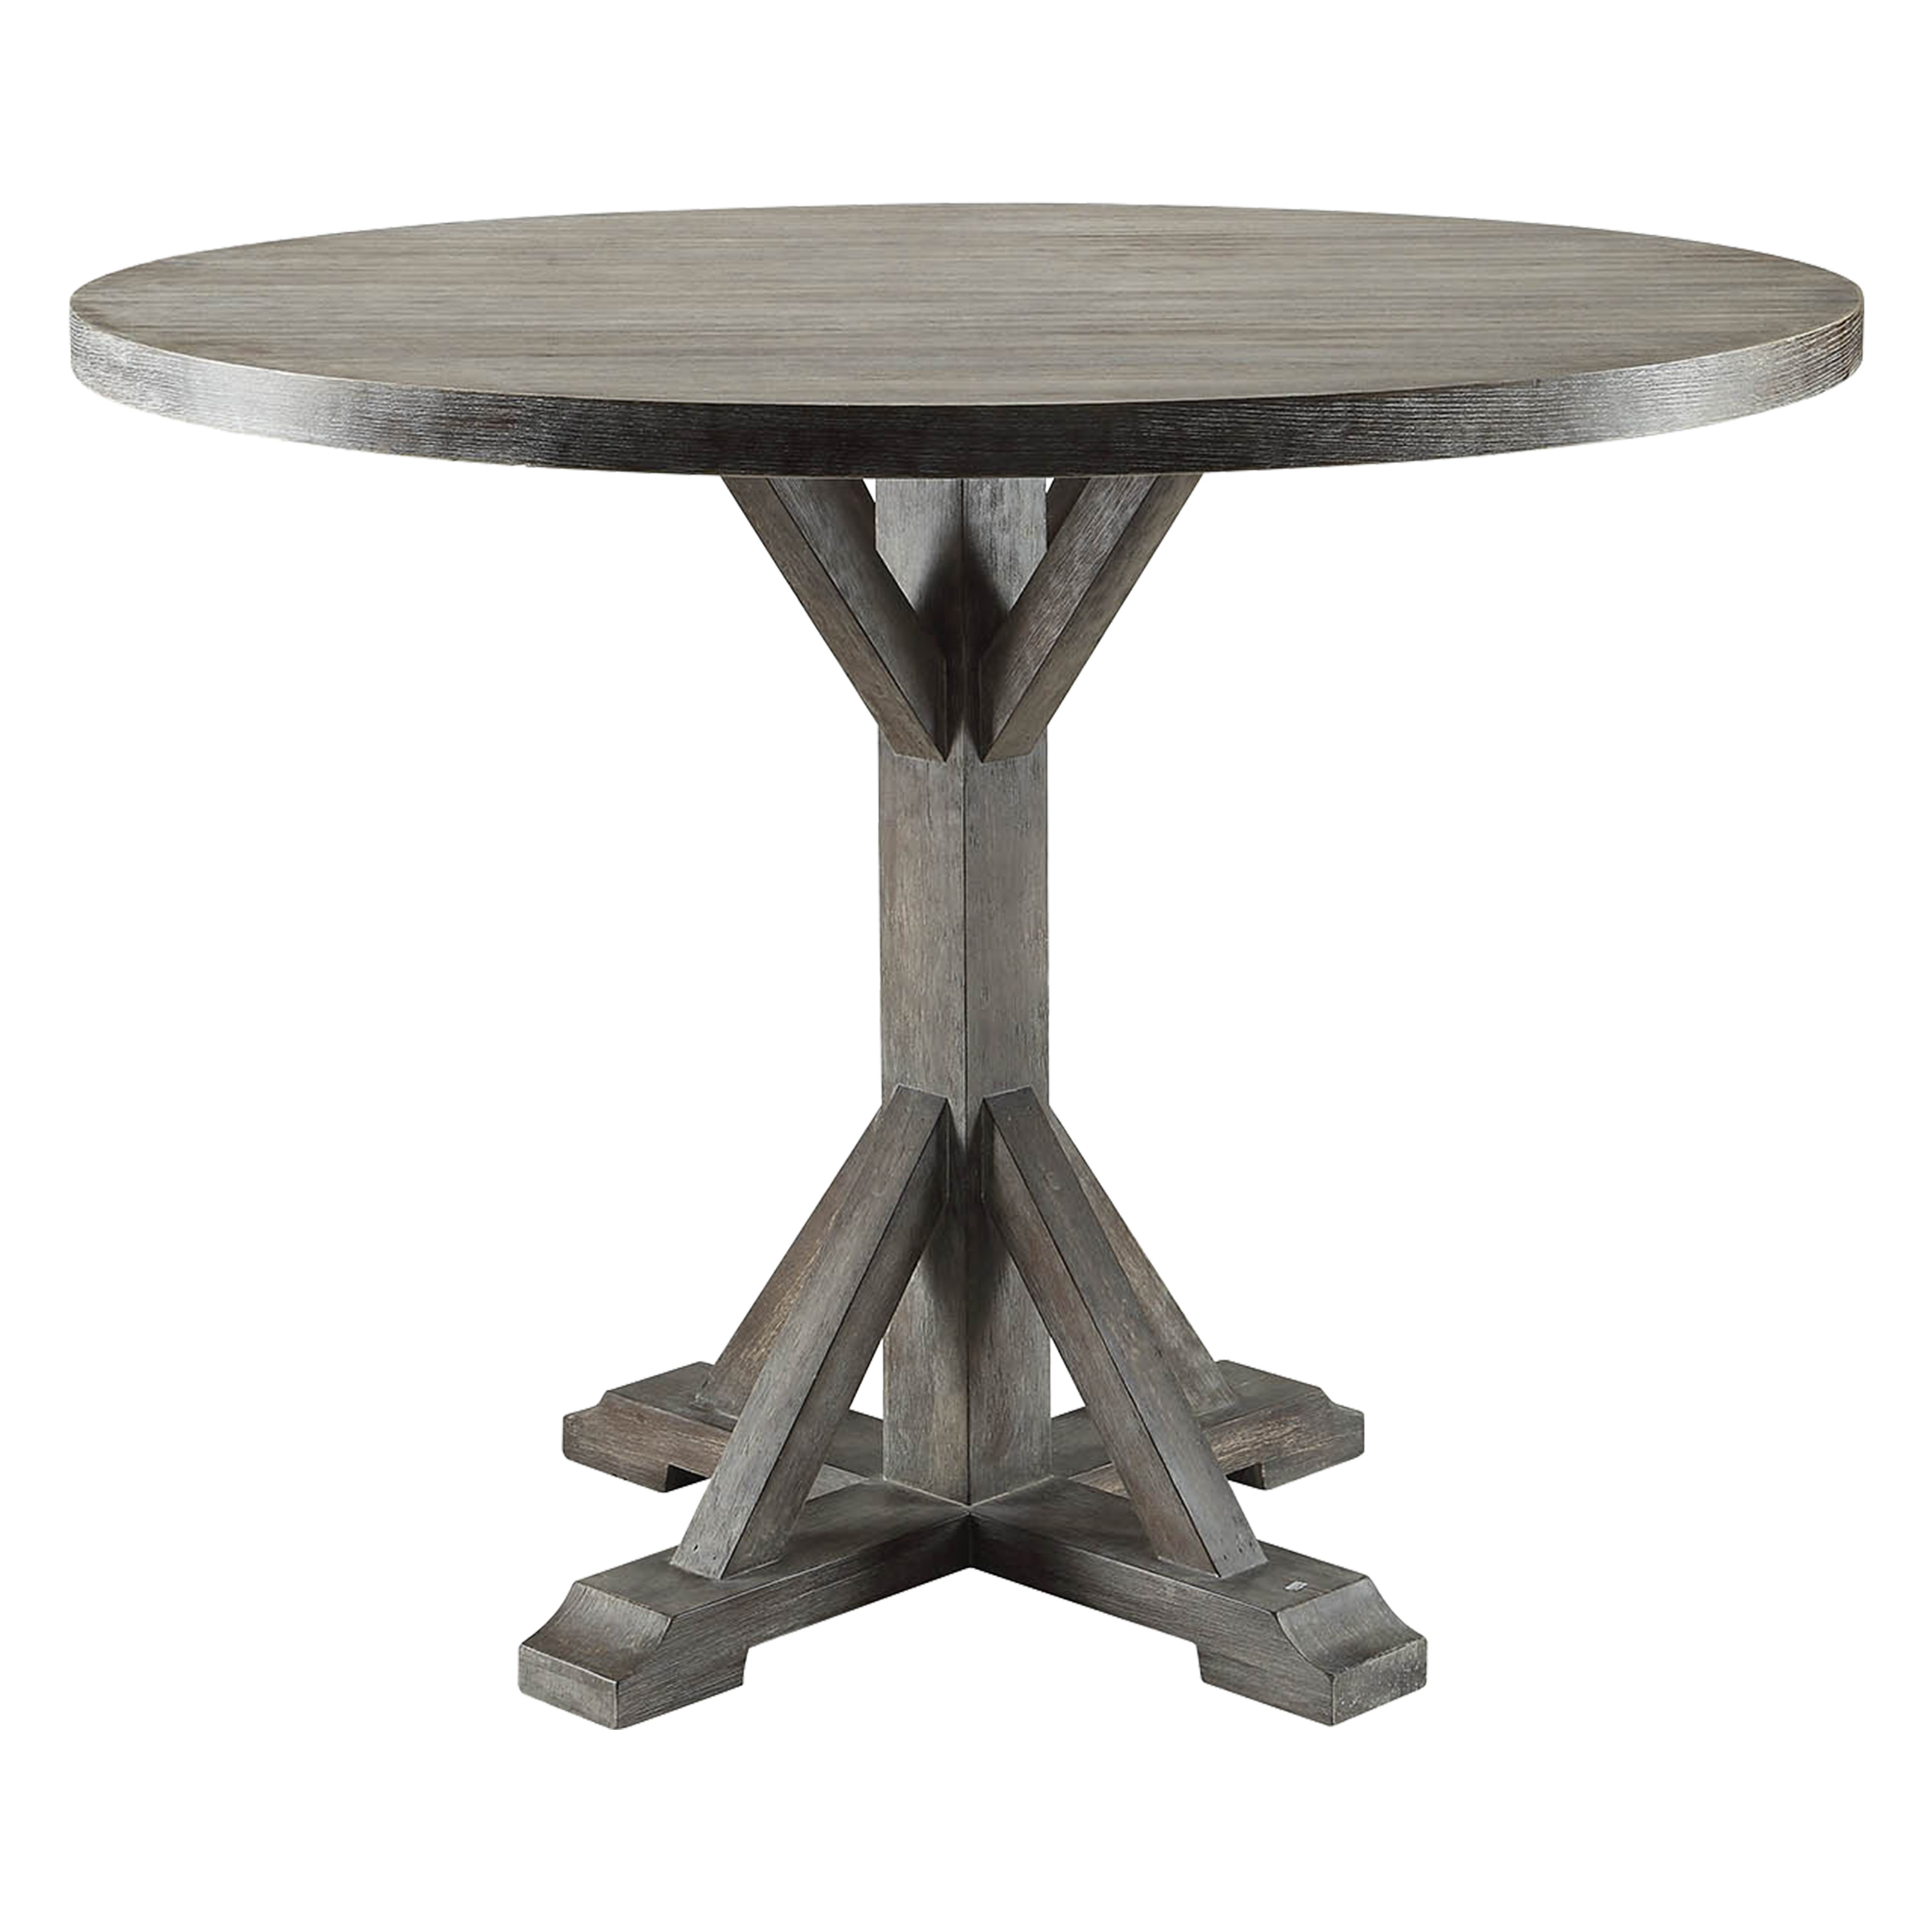 ACME Carmelina Round Dining Table in Weathered Gray Oak